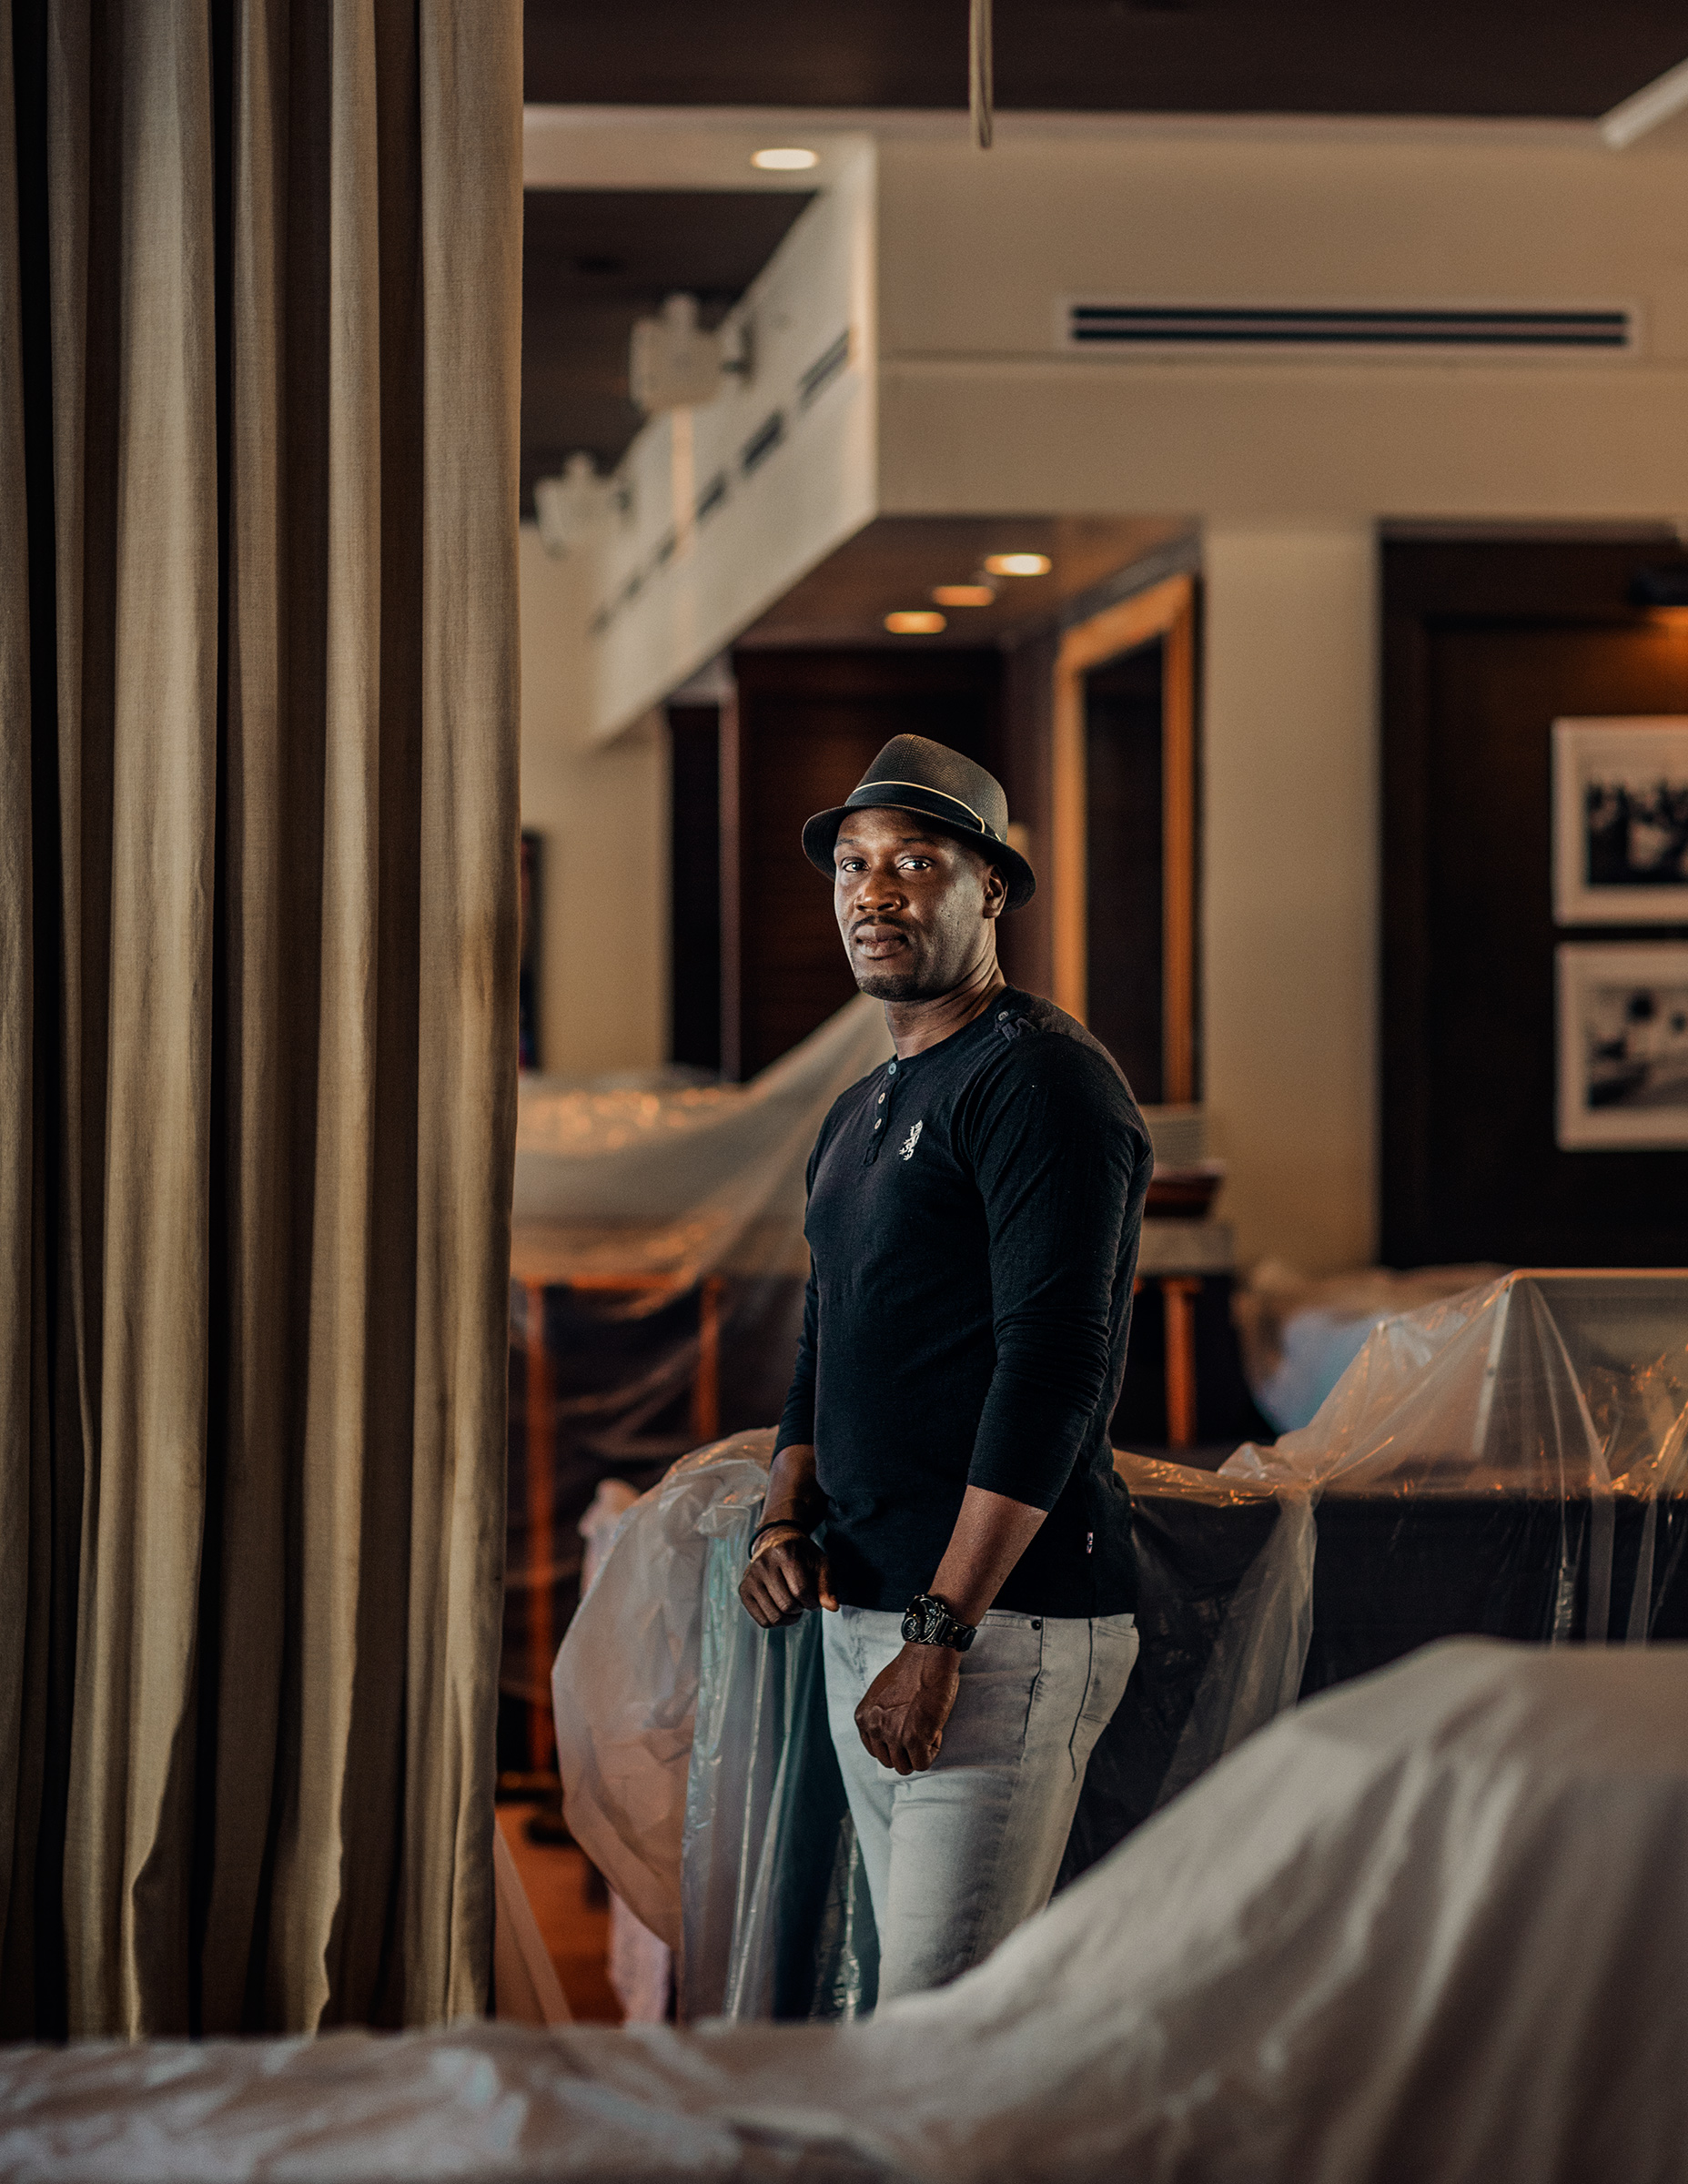 "Fritz Francois, 41, Bell Captain, Miami. With no sign of his unemployment or stimulus checks, Francois, who worked at the Betsy Hotel, has been looking into delivery jobs. For now, though, he's home, trying to teach his 4-year-old son letters and numbers while his wife works as a patient-care associate at a hospital. ""Every day when I wake up, I ask God to shield her,"" he says."